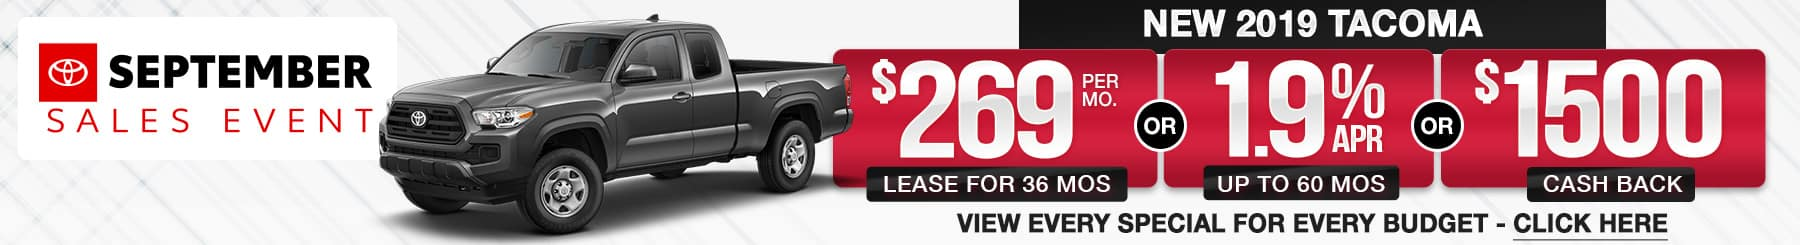 2019 Tacoma Lease or Finance Offers